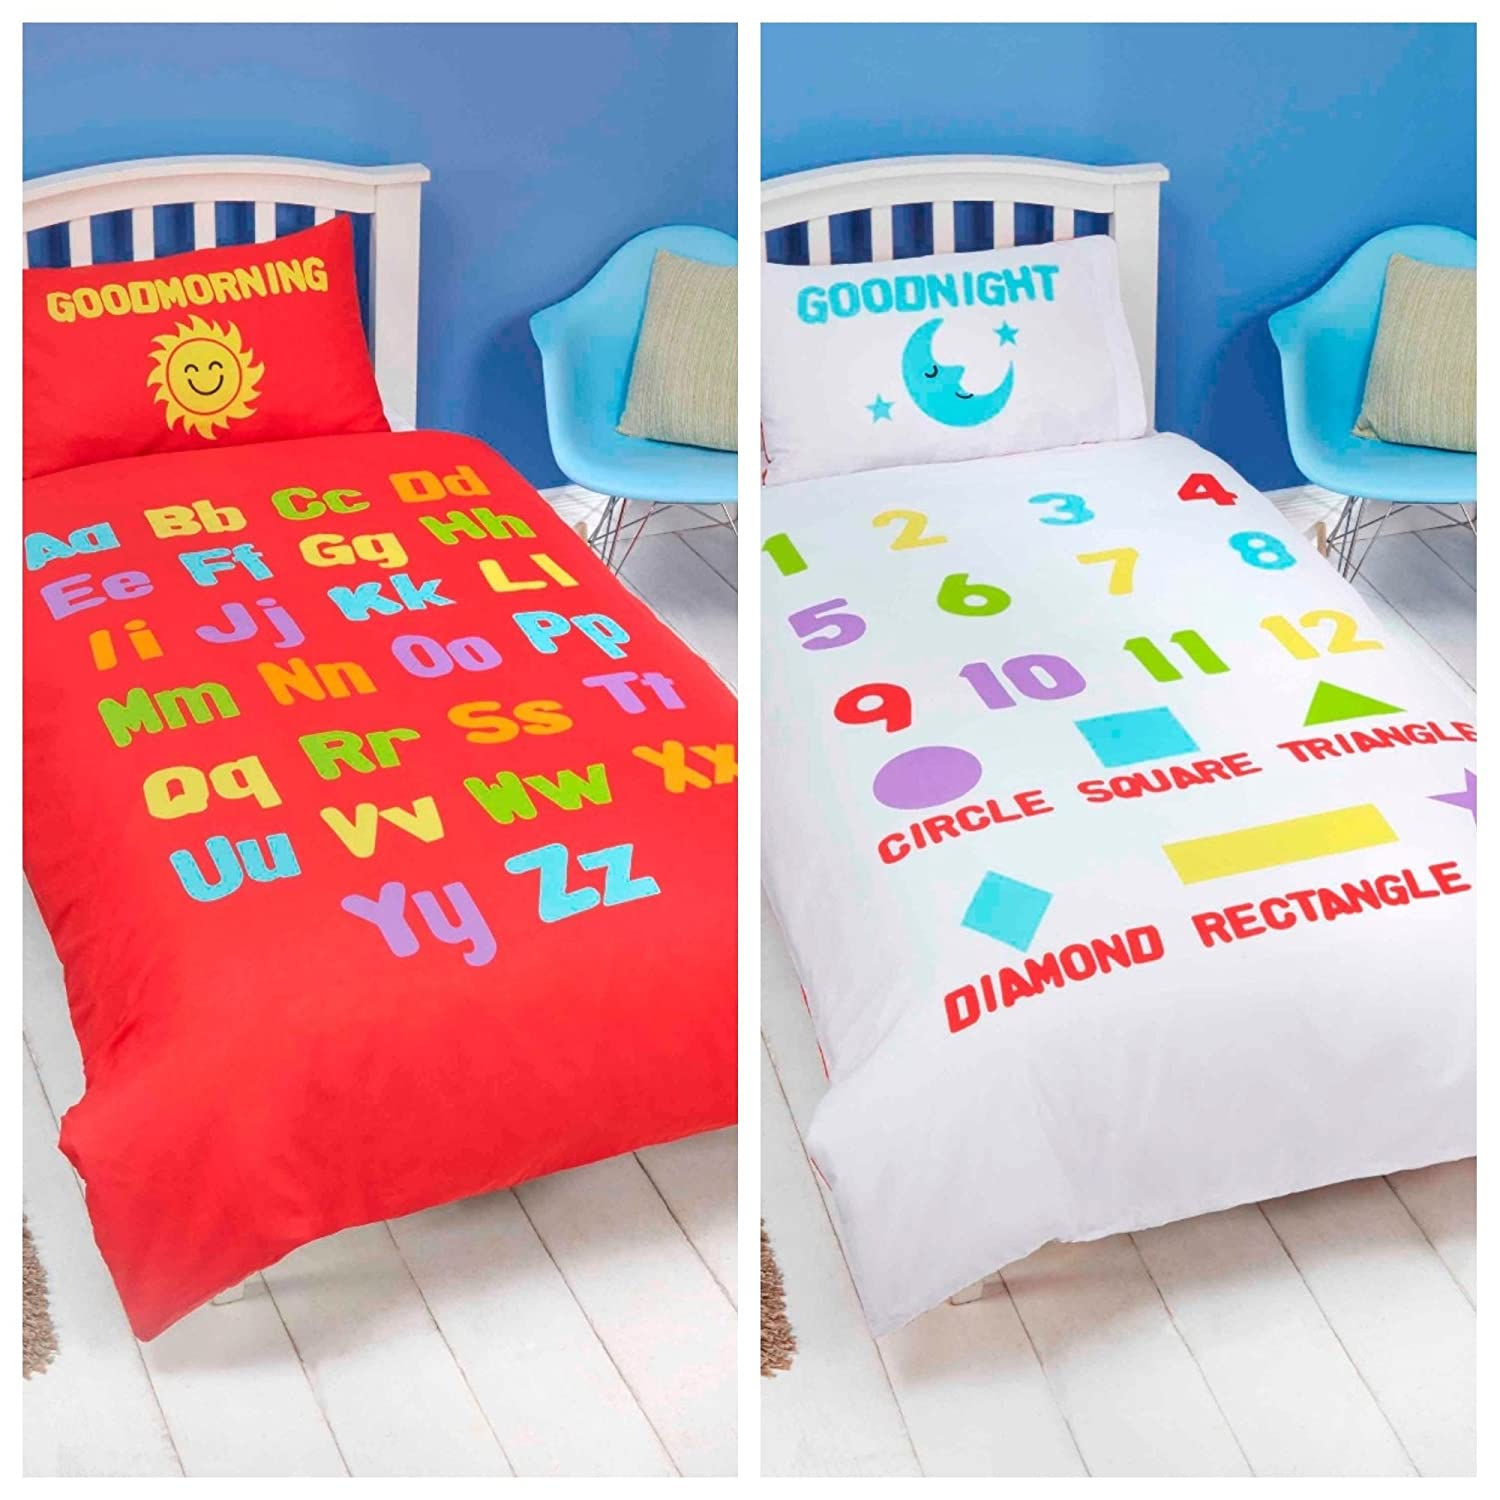 Bedding Heaven ALPHABET, NUMBERS Red White Duvet Cover - Fully Reversible - Cot Bed, Junior, Toddler Bed Size Rapport